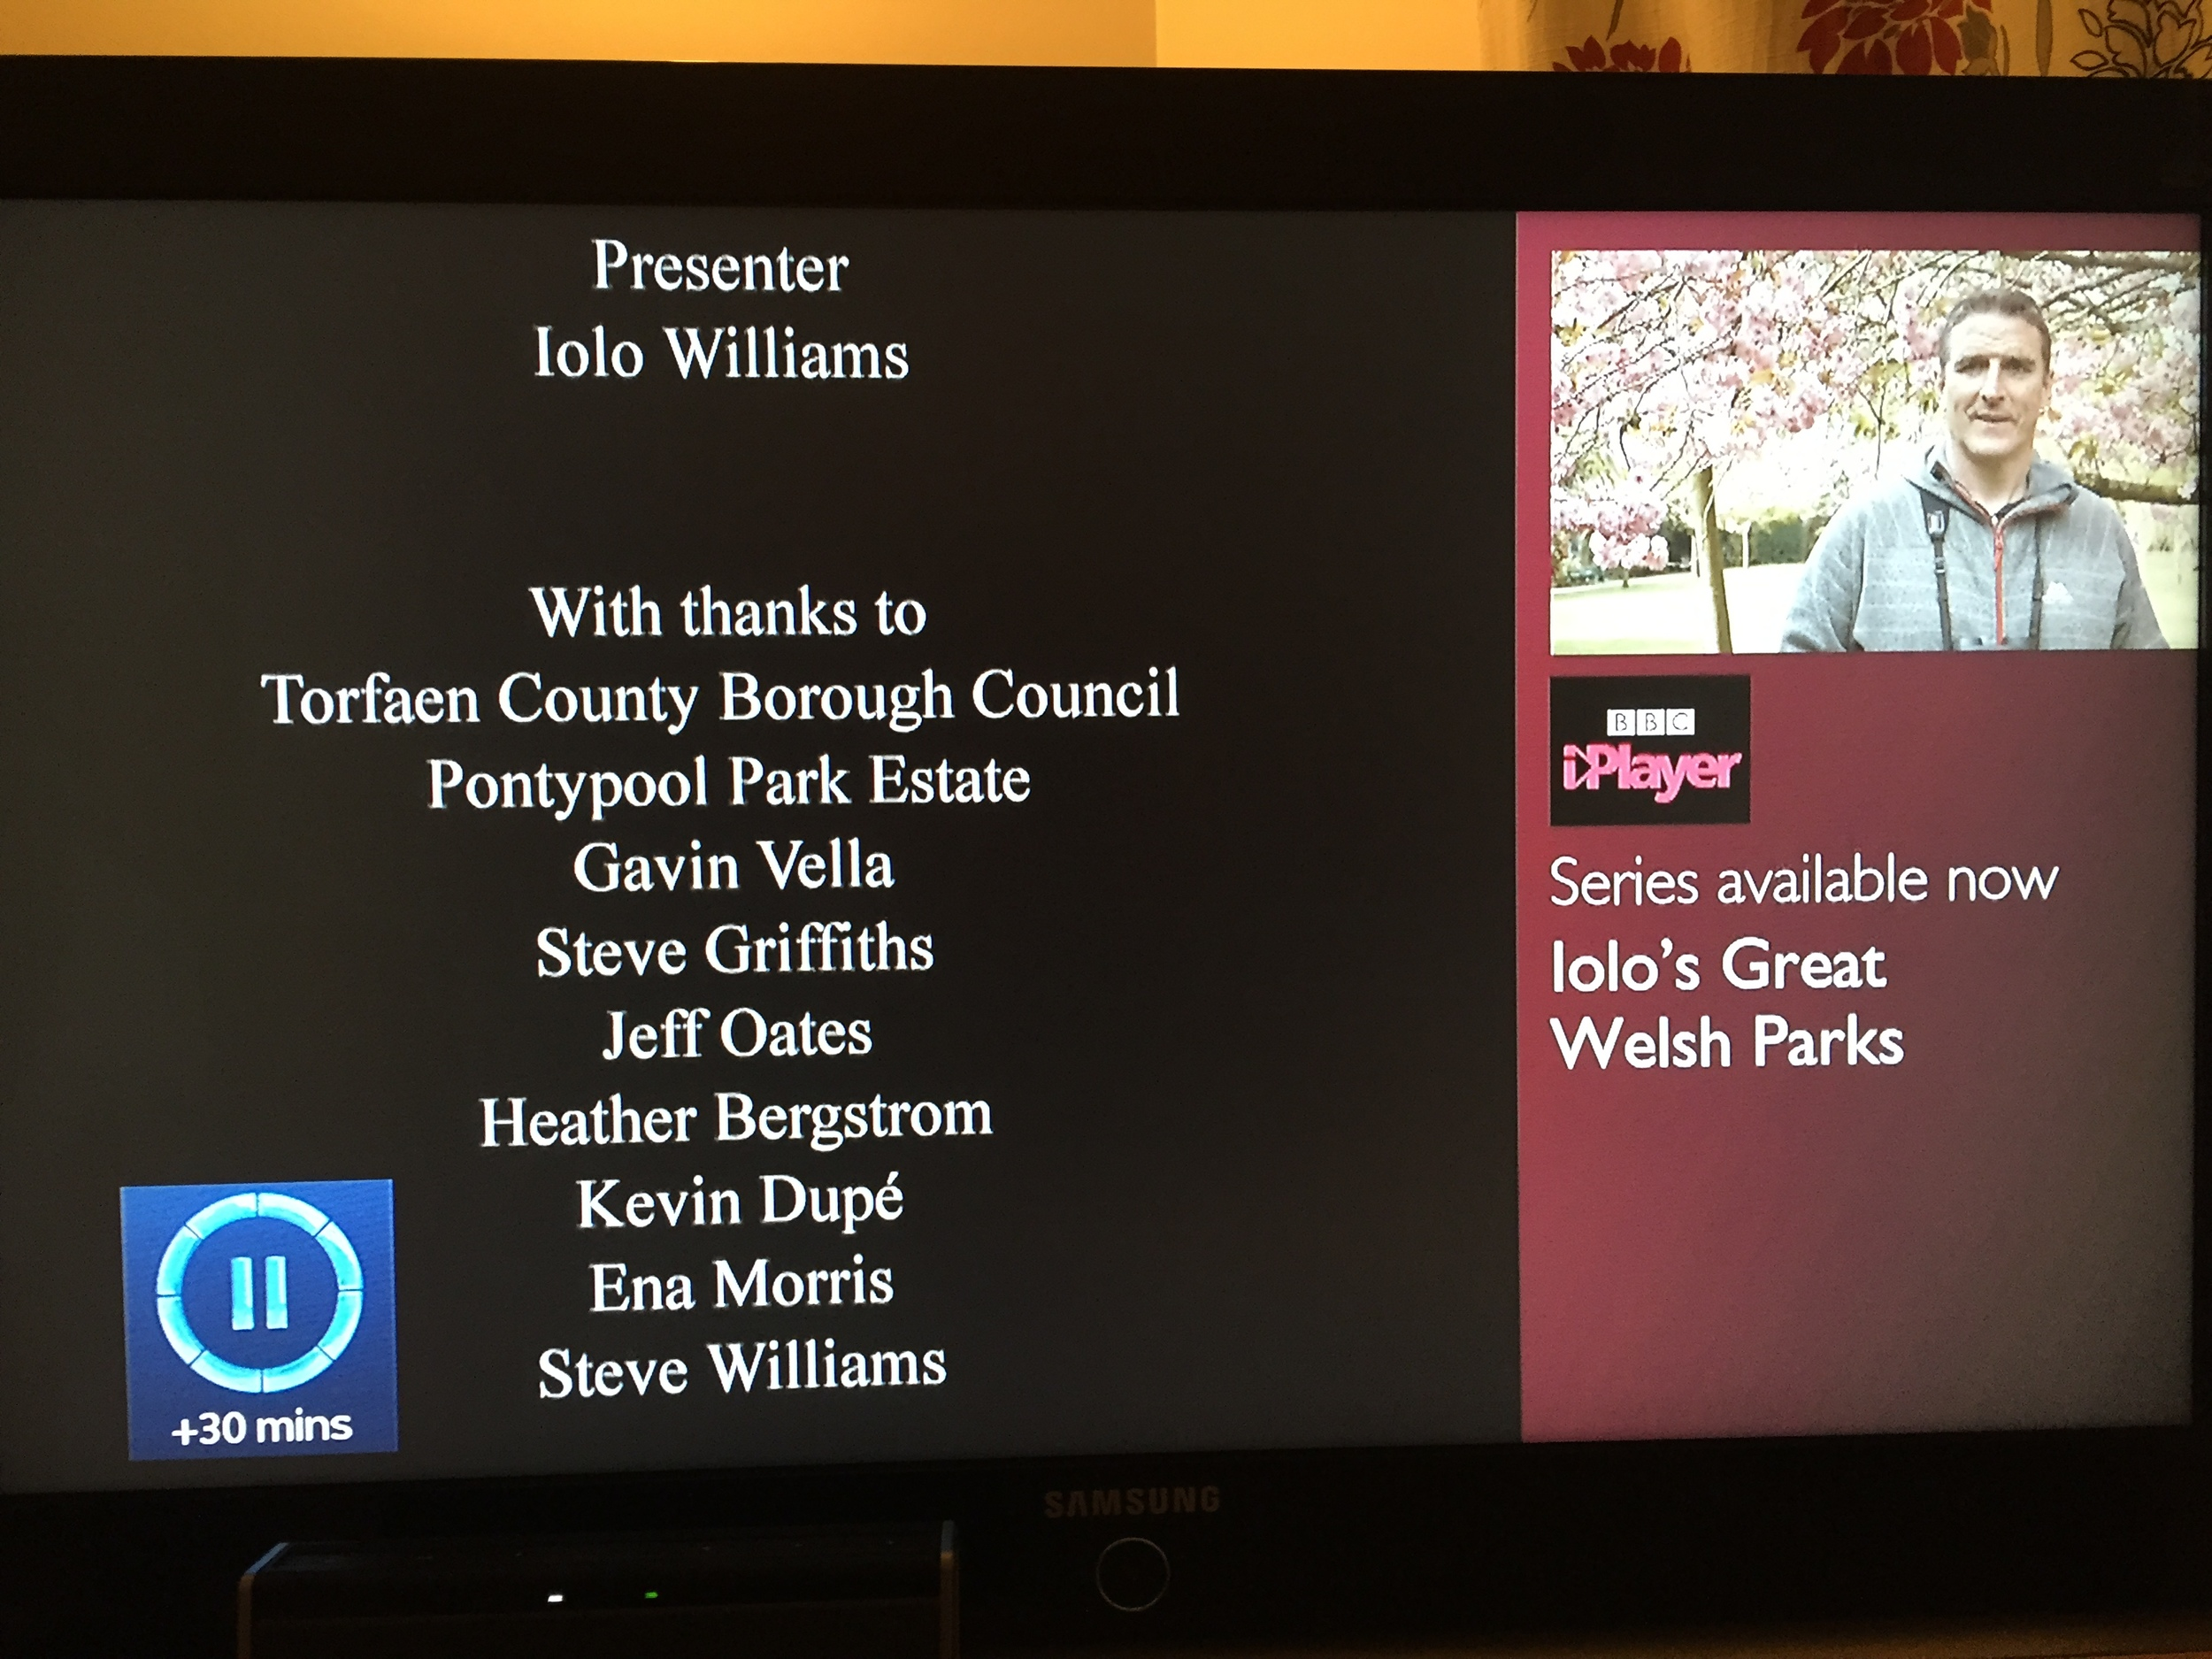 Iolo's Great Welsh Parks Credits